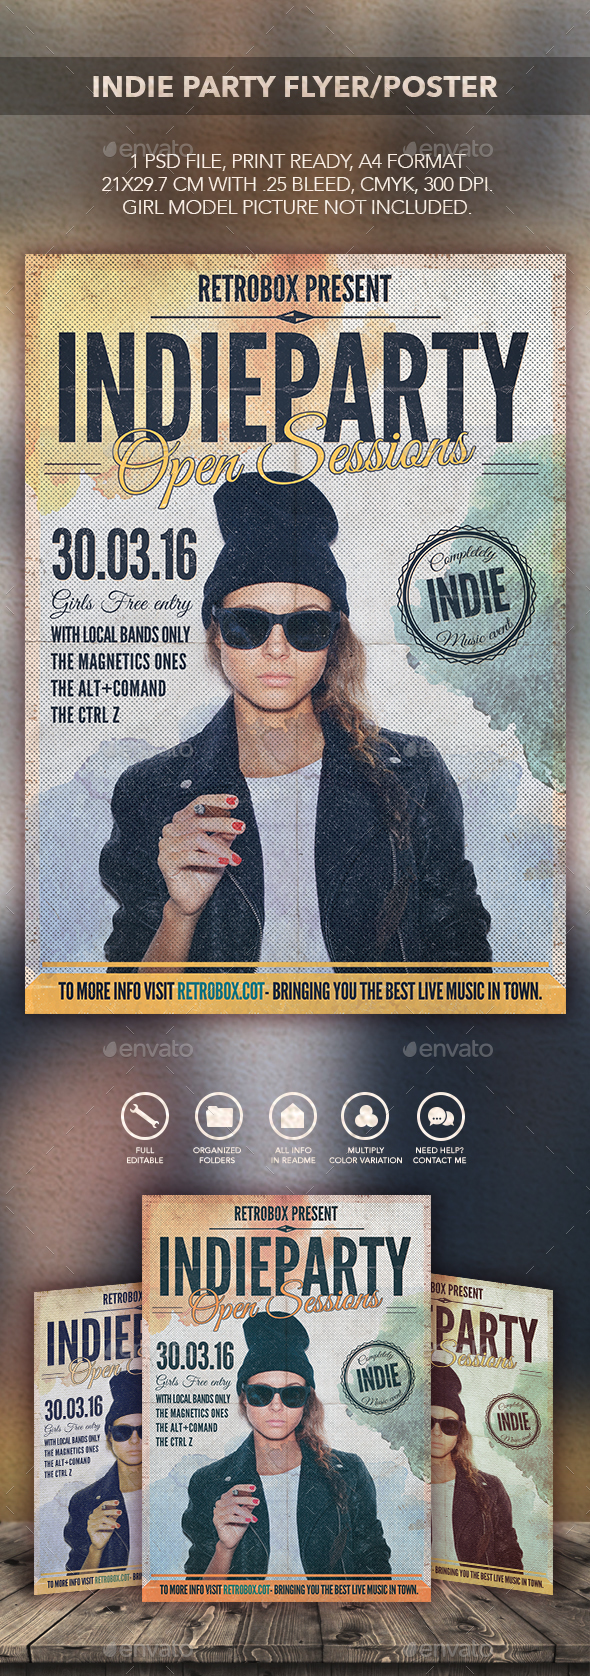 Indie Party Flyer Poster - Flyers Print Templates